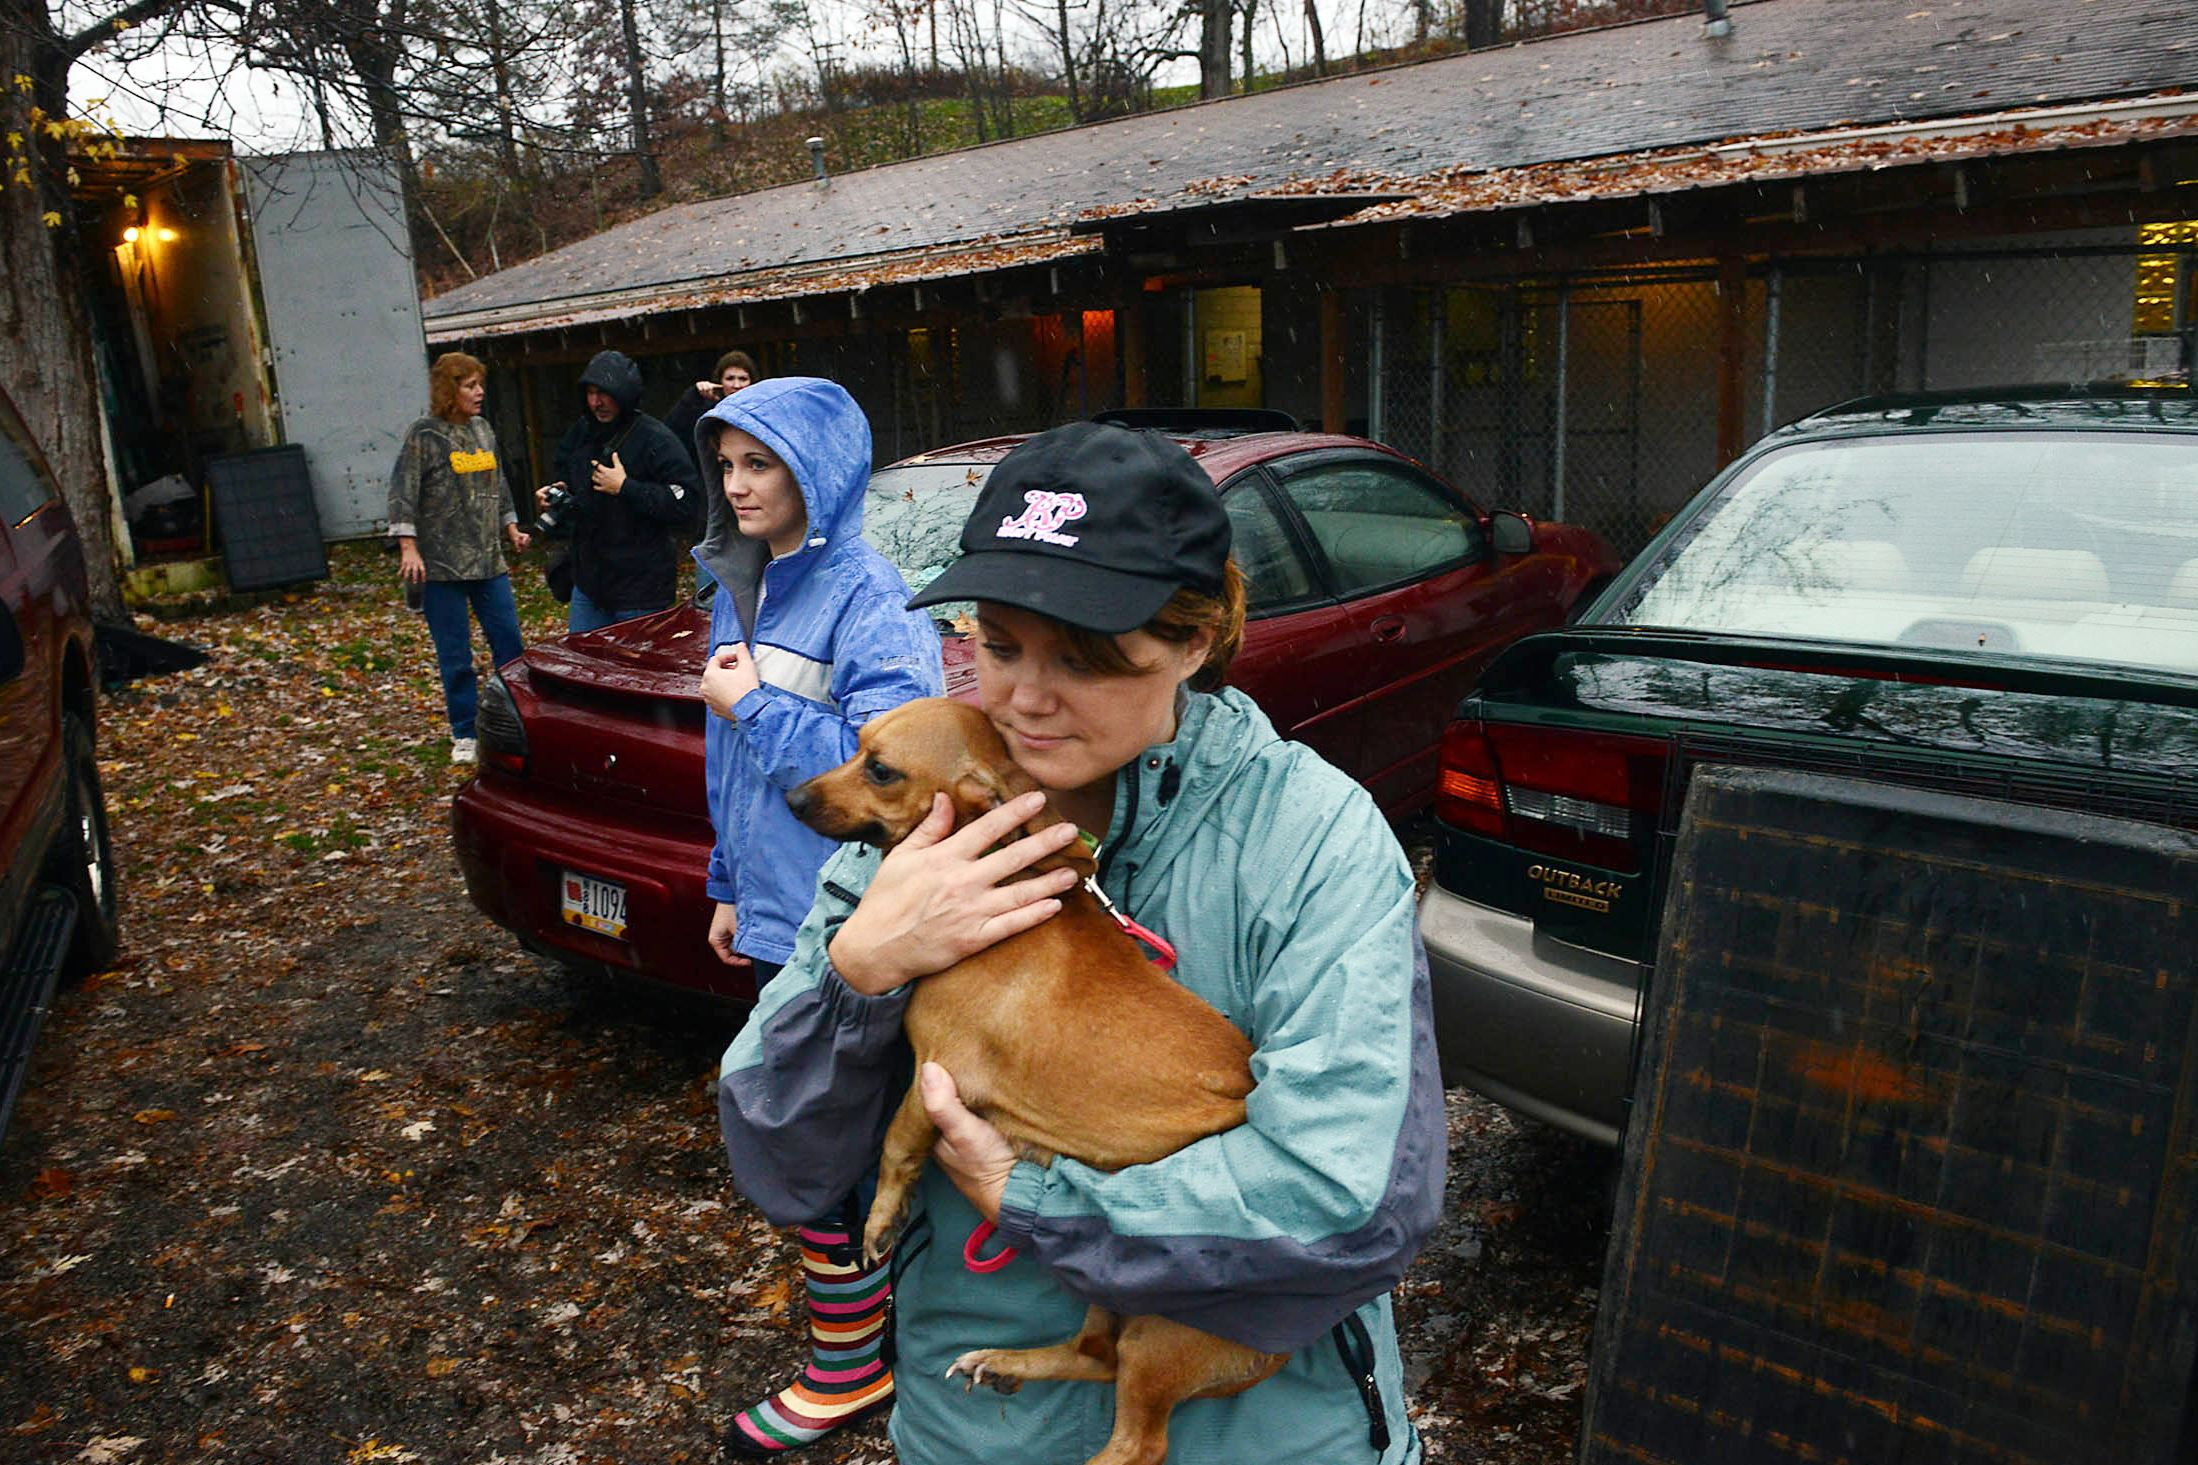 OrphansOfTheStorm3-2 Debbi Reefer carries a dachshund as volunteers and staff of Orphans of the Storm, an animal shelter in Kittanning, work to evacuate animals in anticipation of possible flooding from Hurricane Sandy in 2012.